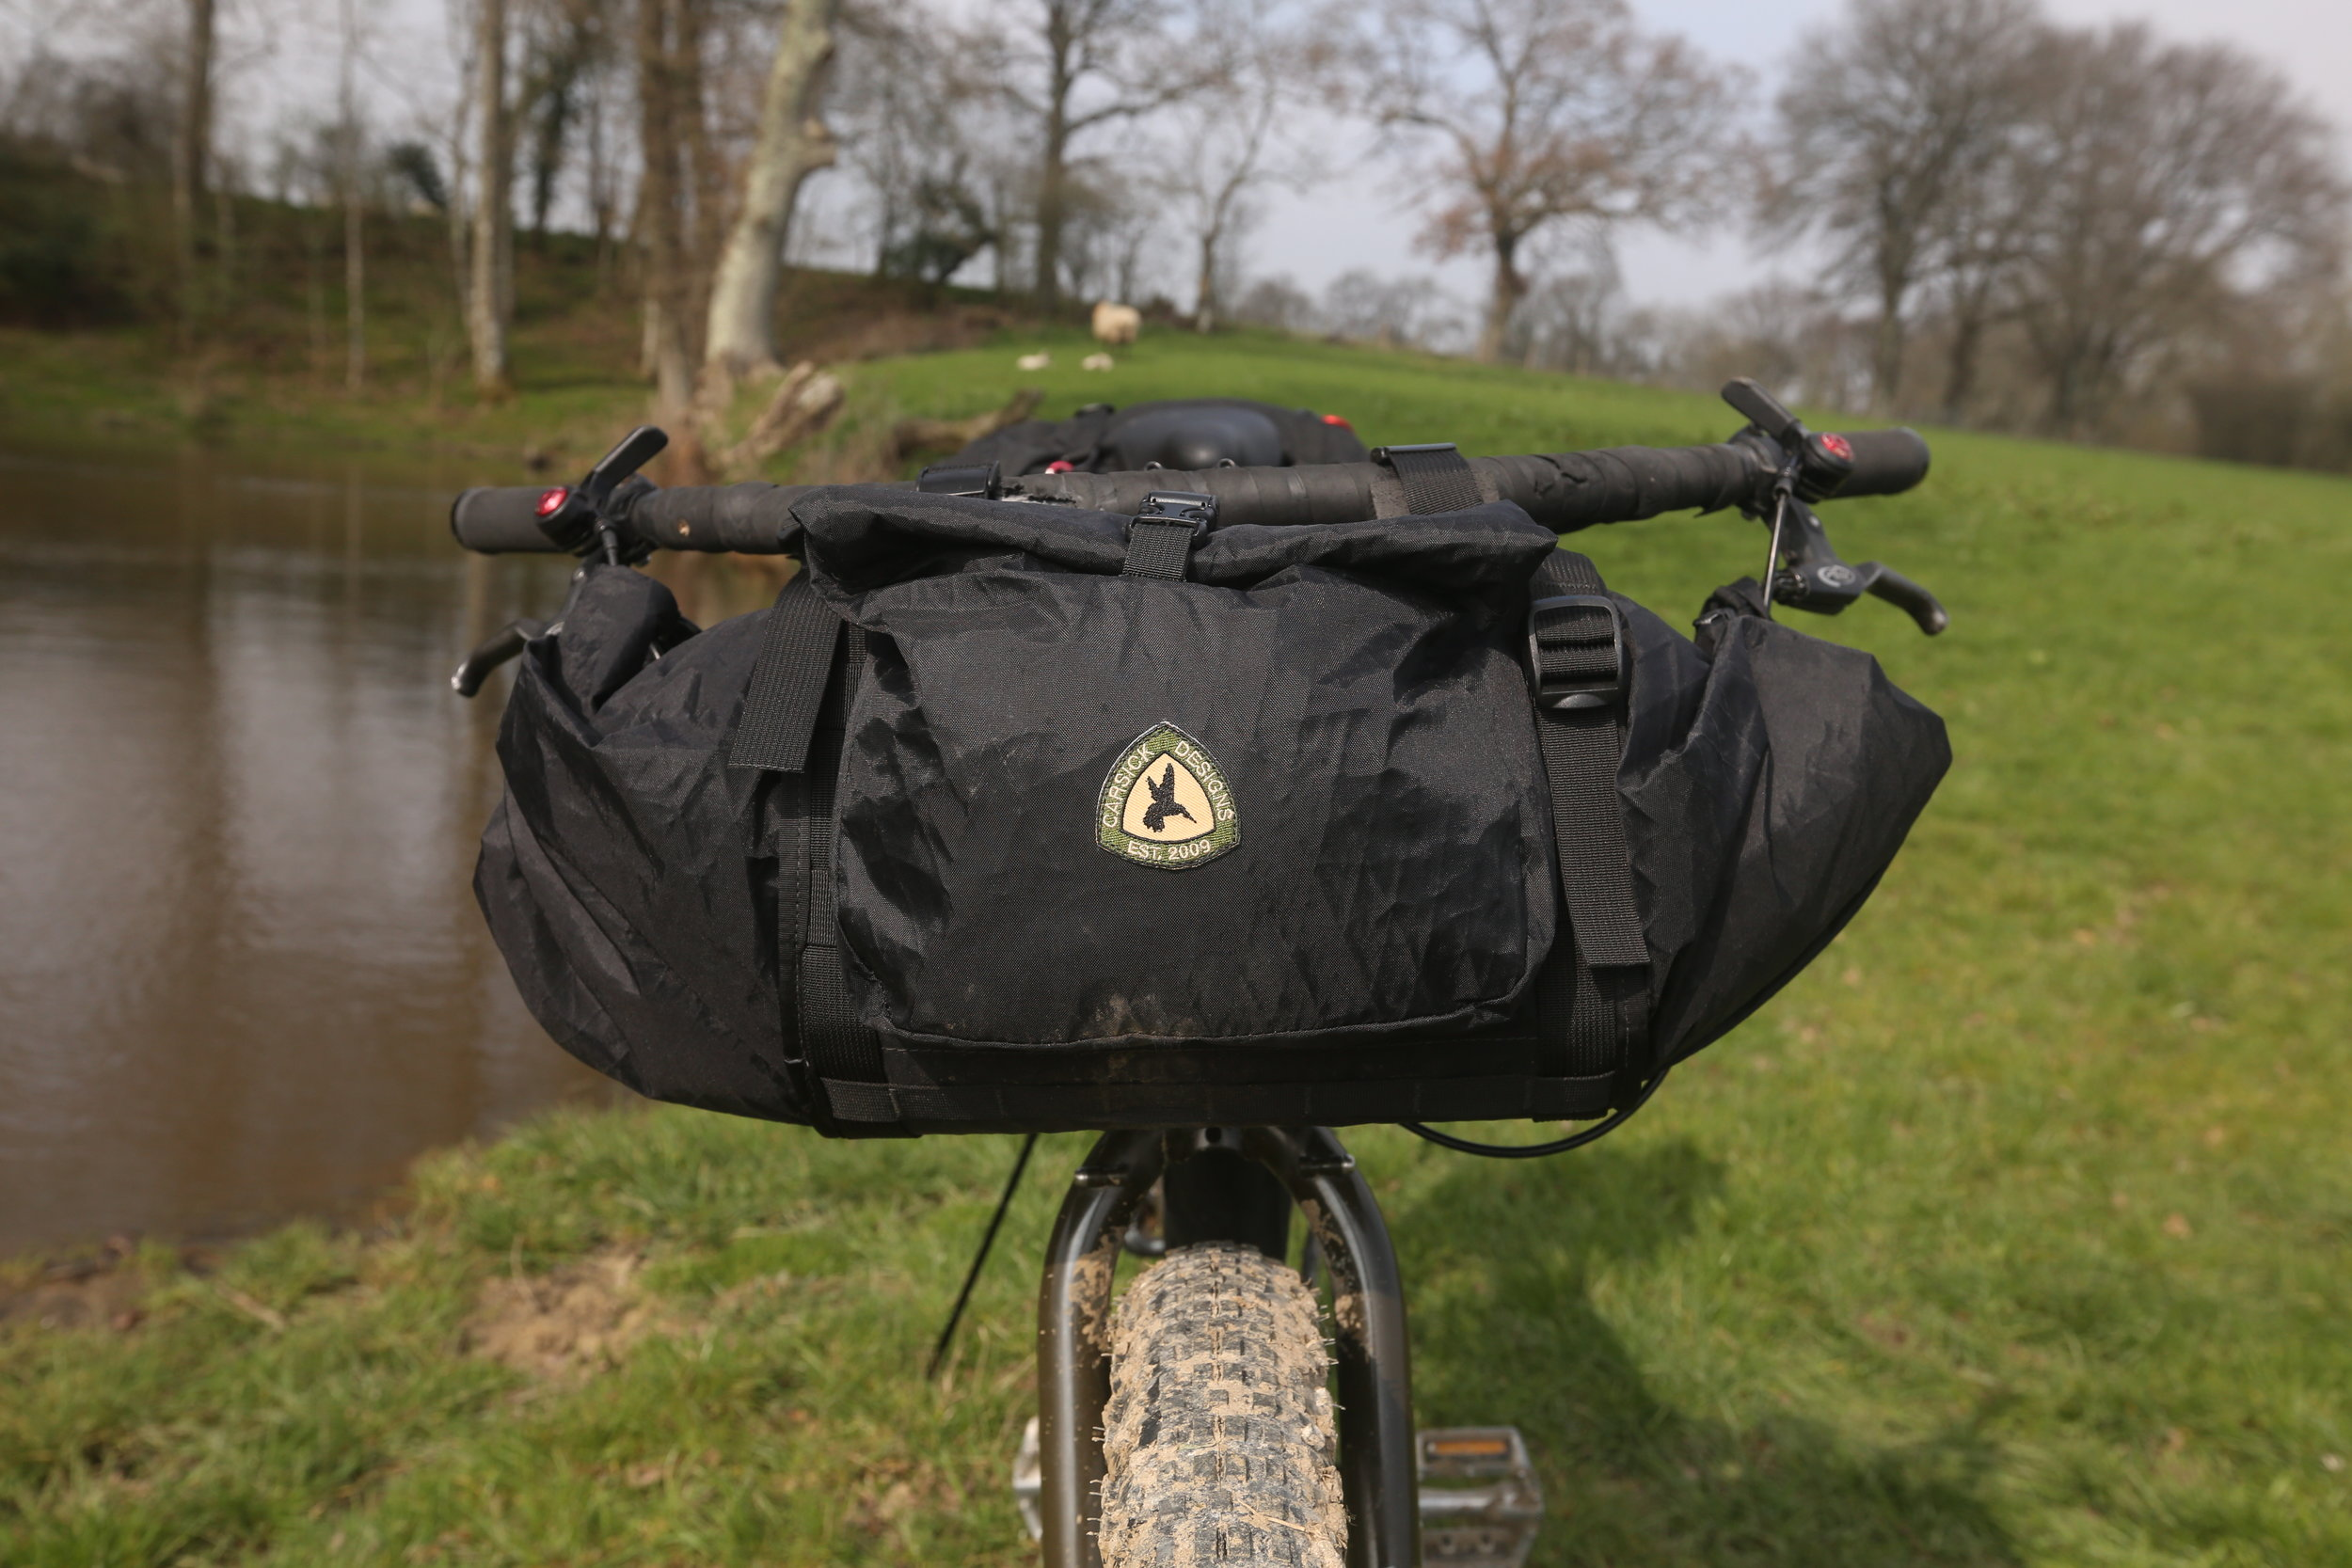 bikepacking, bikepacking bags, bikepackig blog, cycling, cycling blog, cycling bags, car sick designs, jack macgowan, bicycle touring apocalypse, bikepacking review, cycling gear, mtb, surly, surly bikes, surly ecr, fat bike, isle of skye, knards